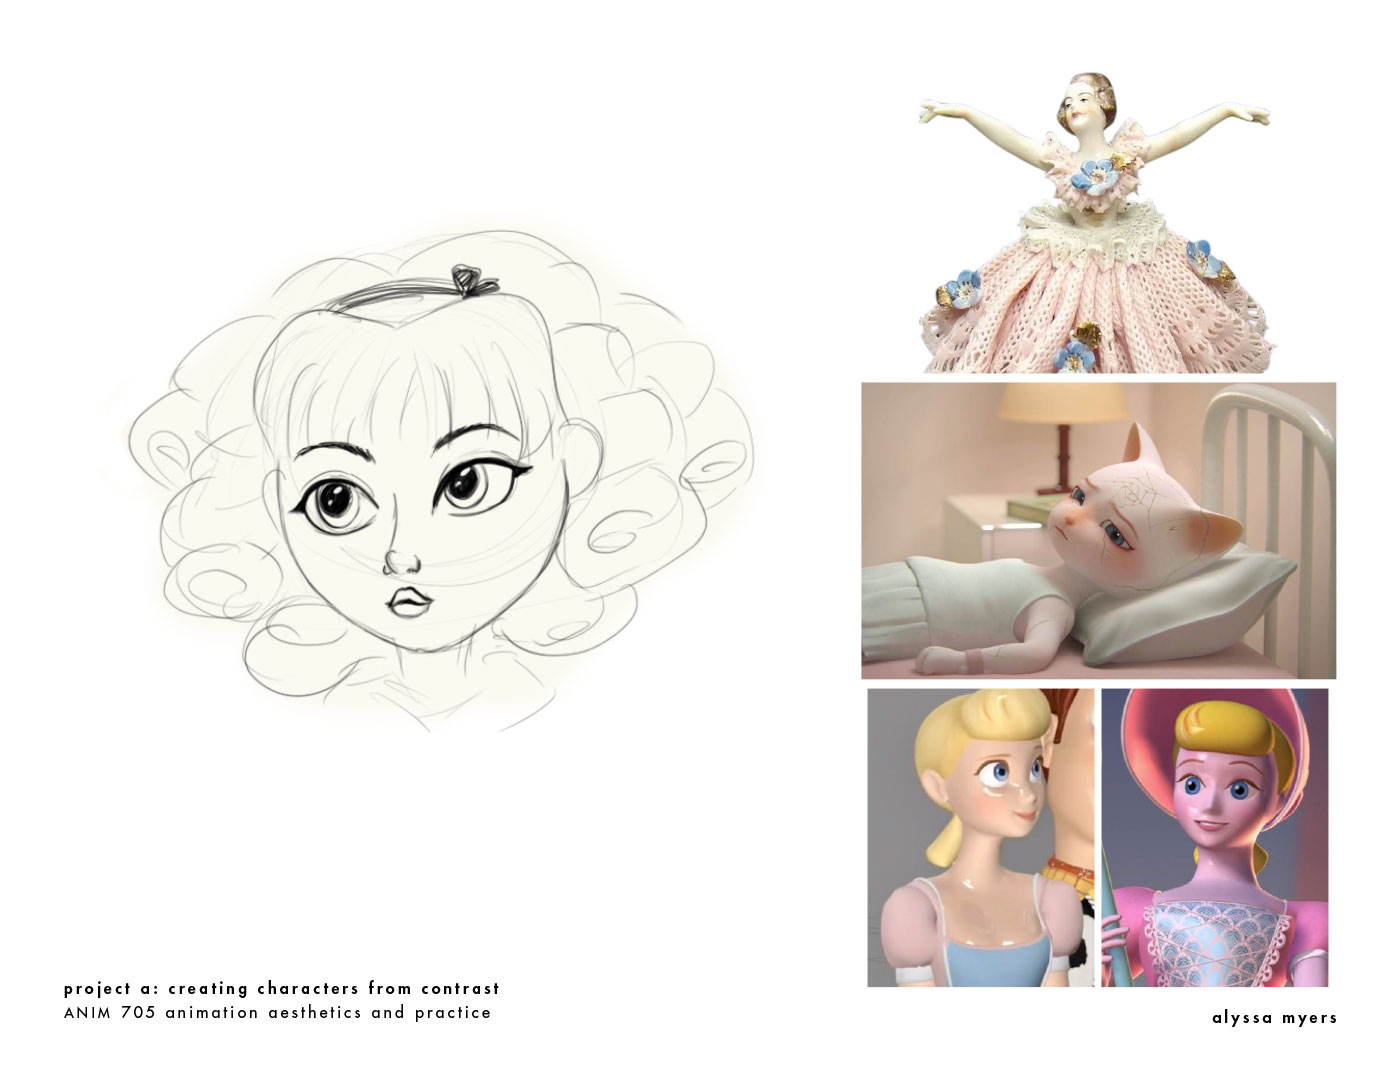 Inspiration for texturing Alice.